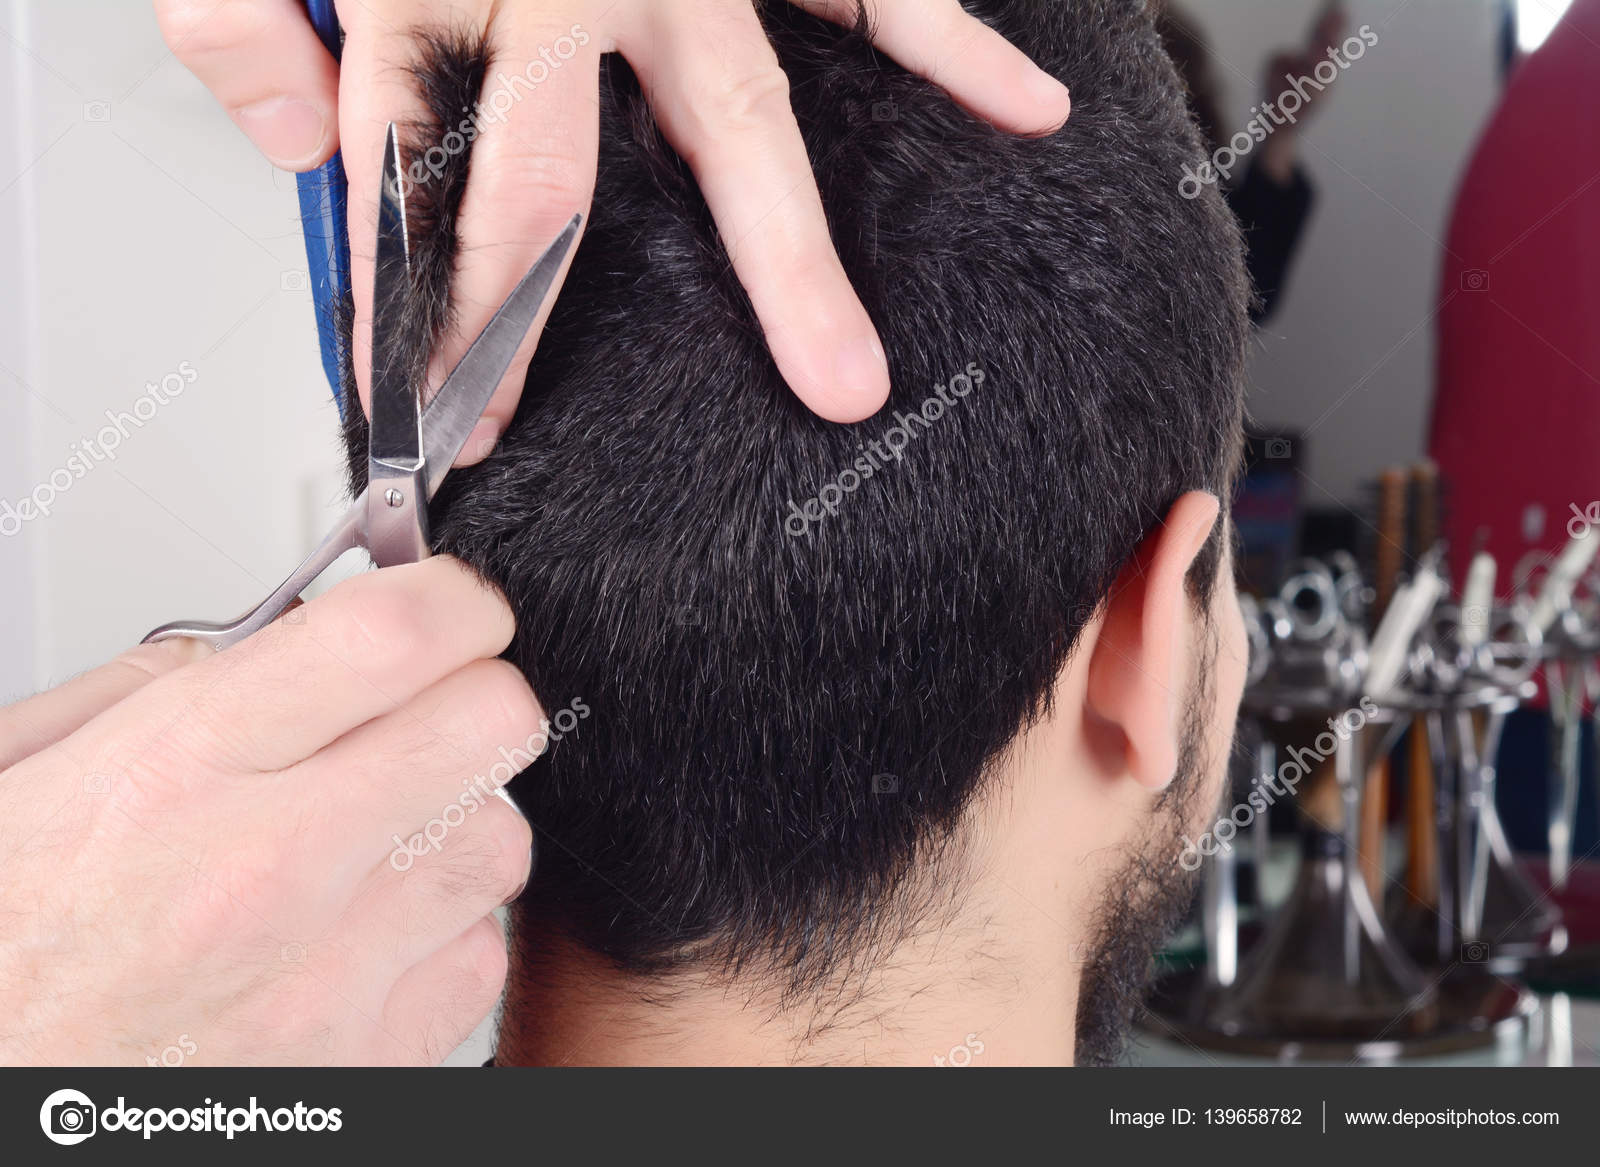 Young Man Having A Haircut With Scissors Stock Photo